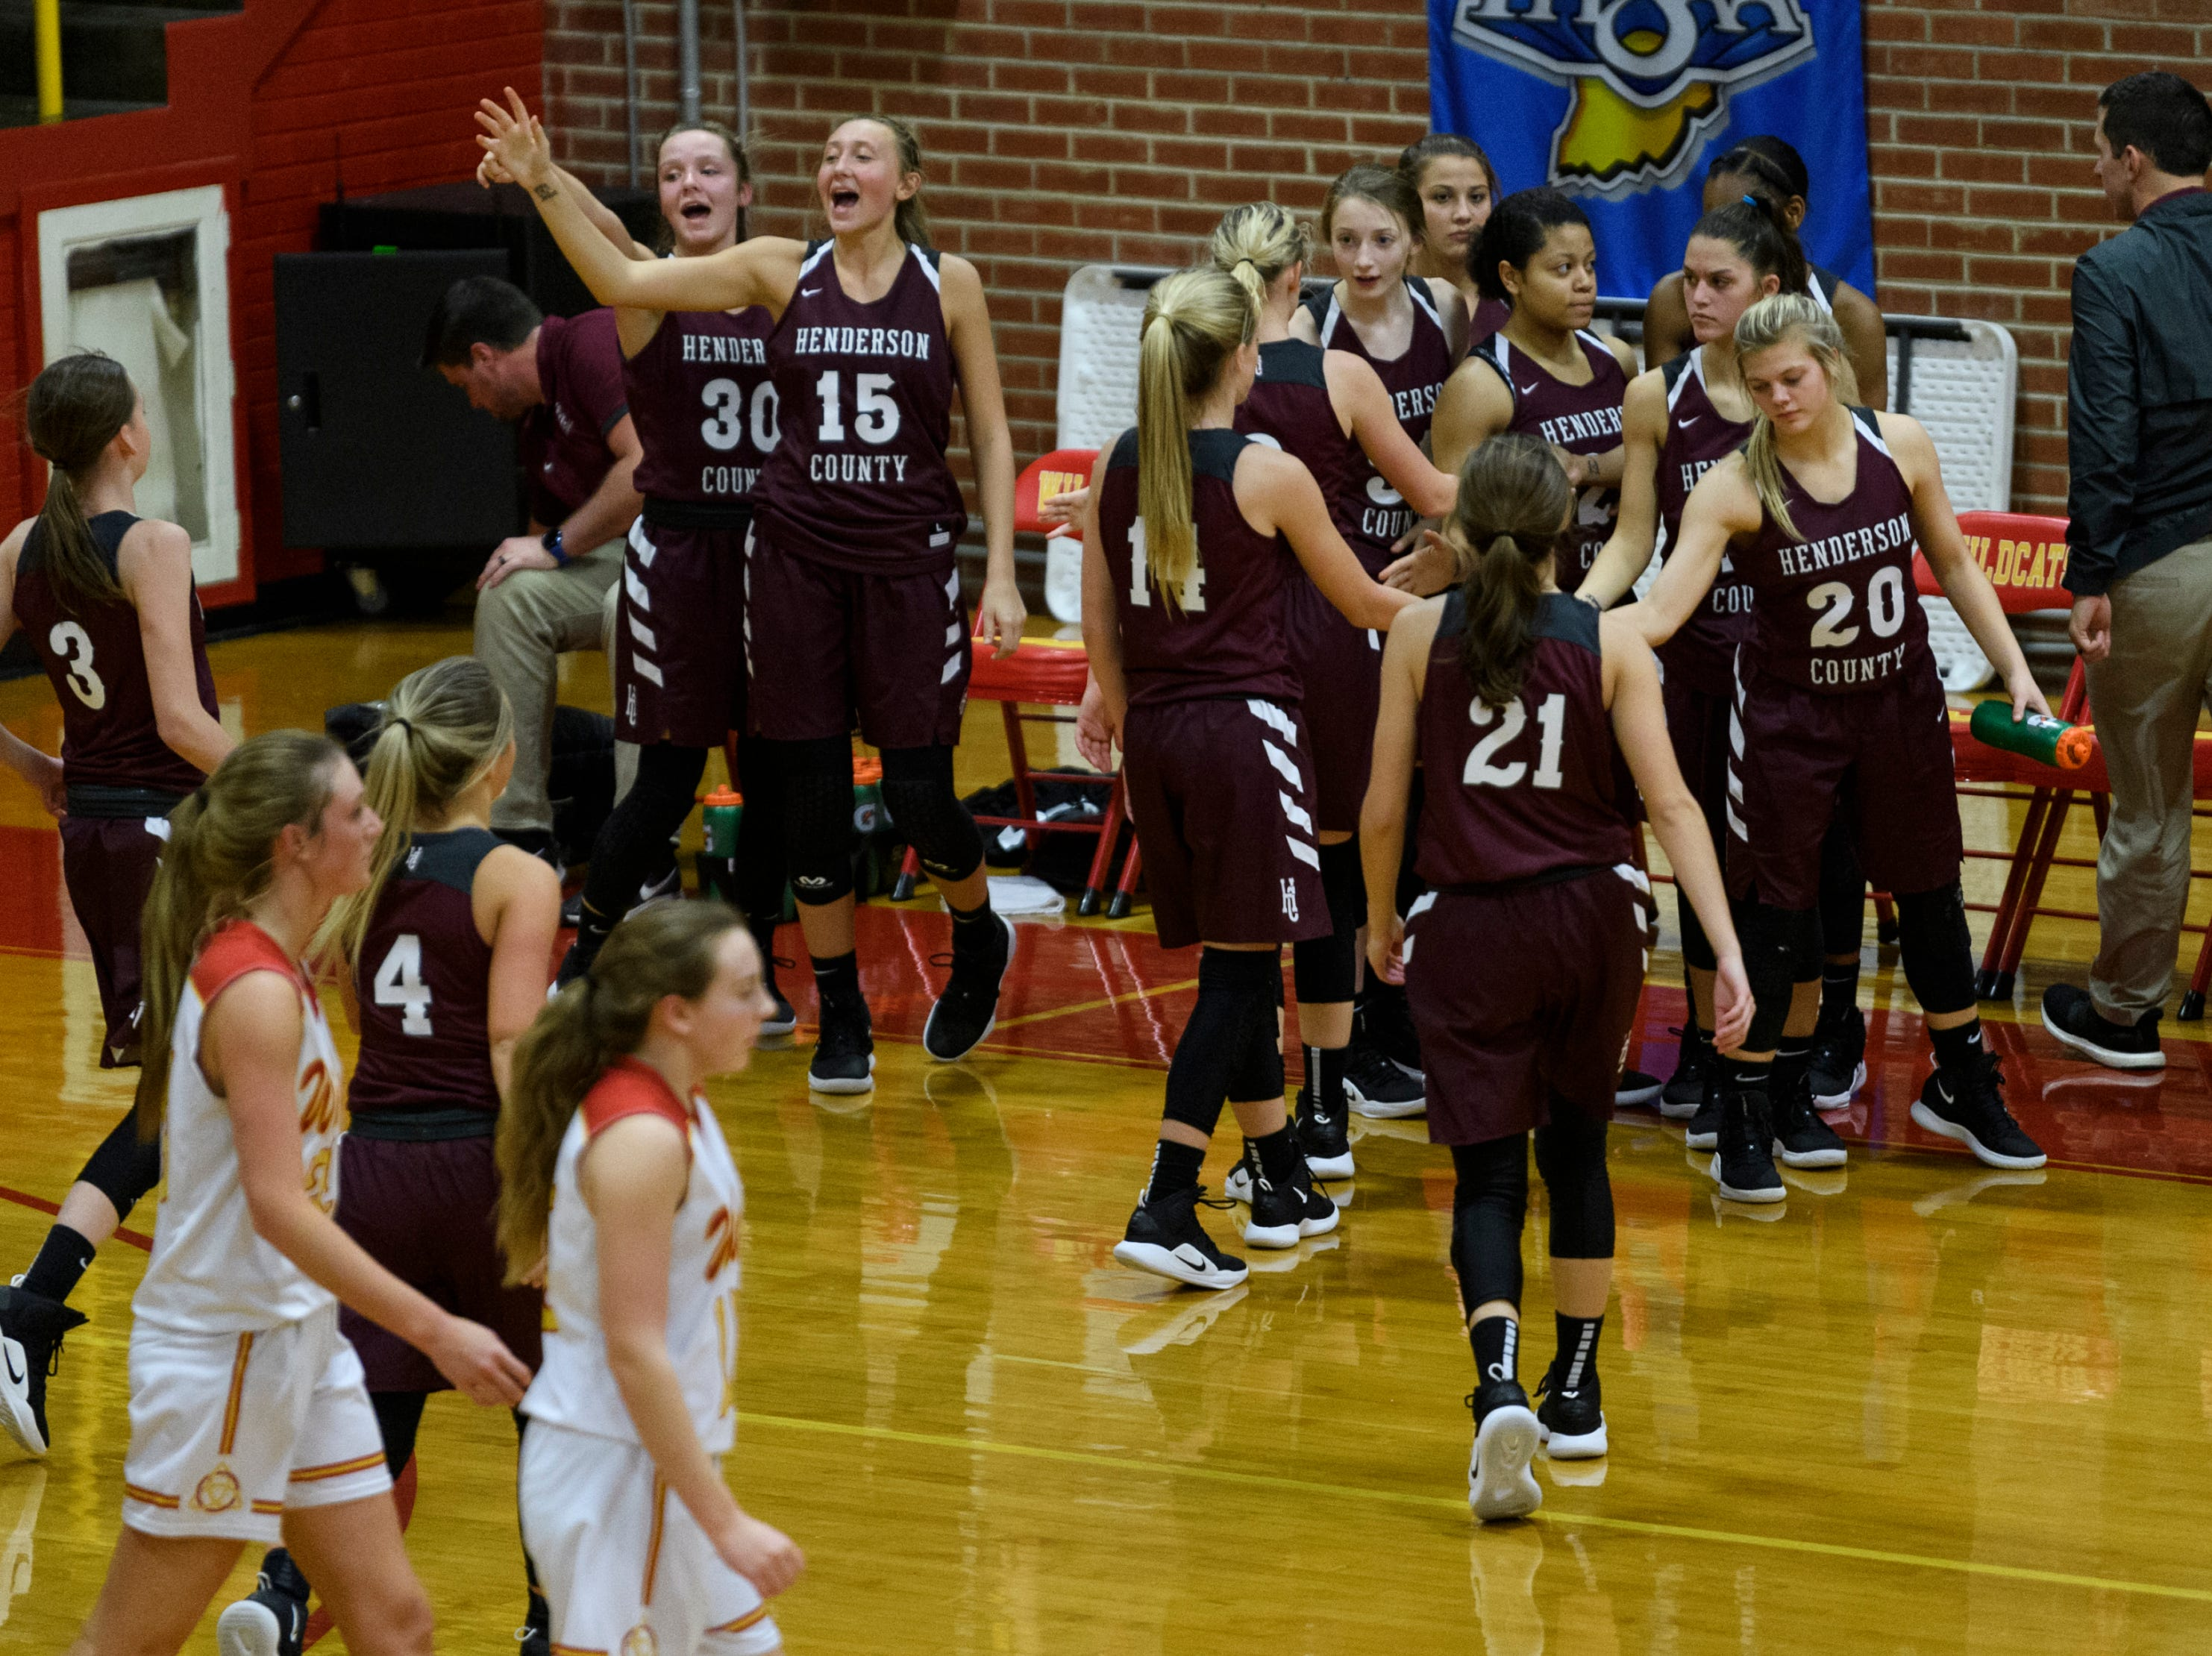 677Henderson County's Emilee Hope (30) and Alyssa Dickson (15), top left, cheer as their team seals a 53-40 victory over the Mater Dei Wildcats at Mater Dei High School in Evansville, Tuesday, Dec. 11, 2018.